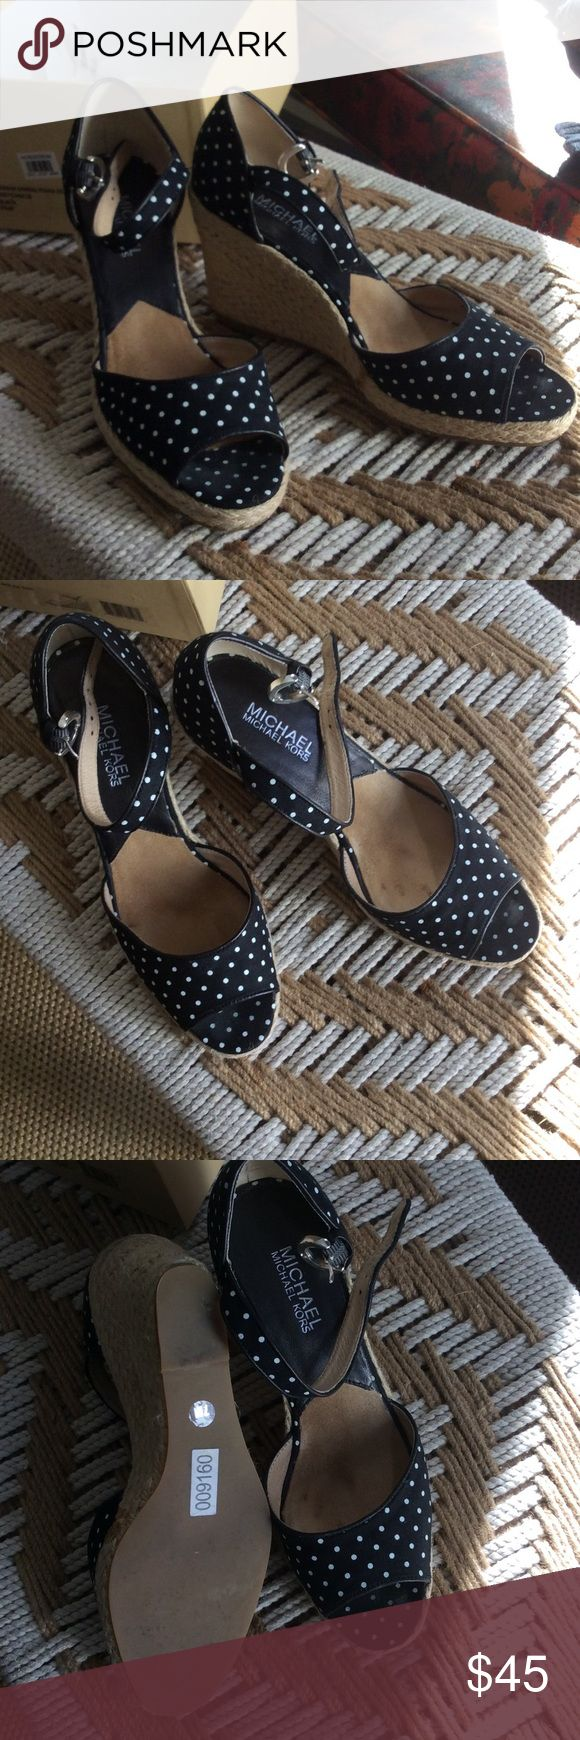 Michael Kors polka dot black and white wedges In almost new condition, with box. These are a wardrobe staple! Size 7 black and white Michael Kors Shoes Wedges